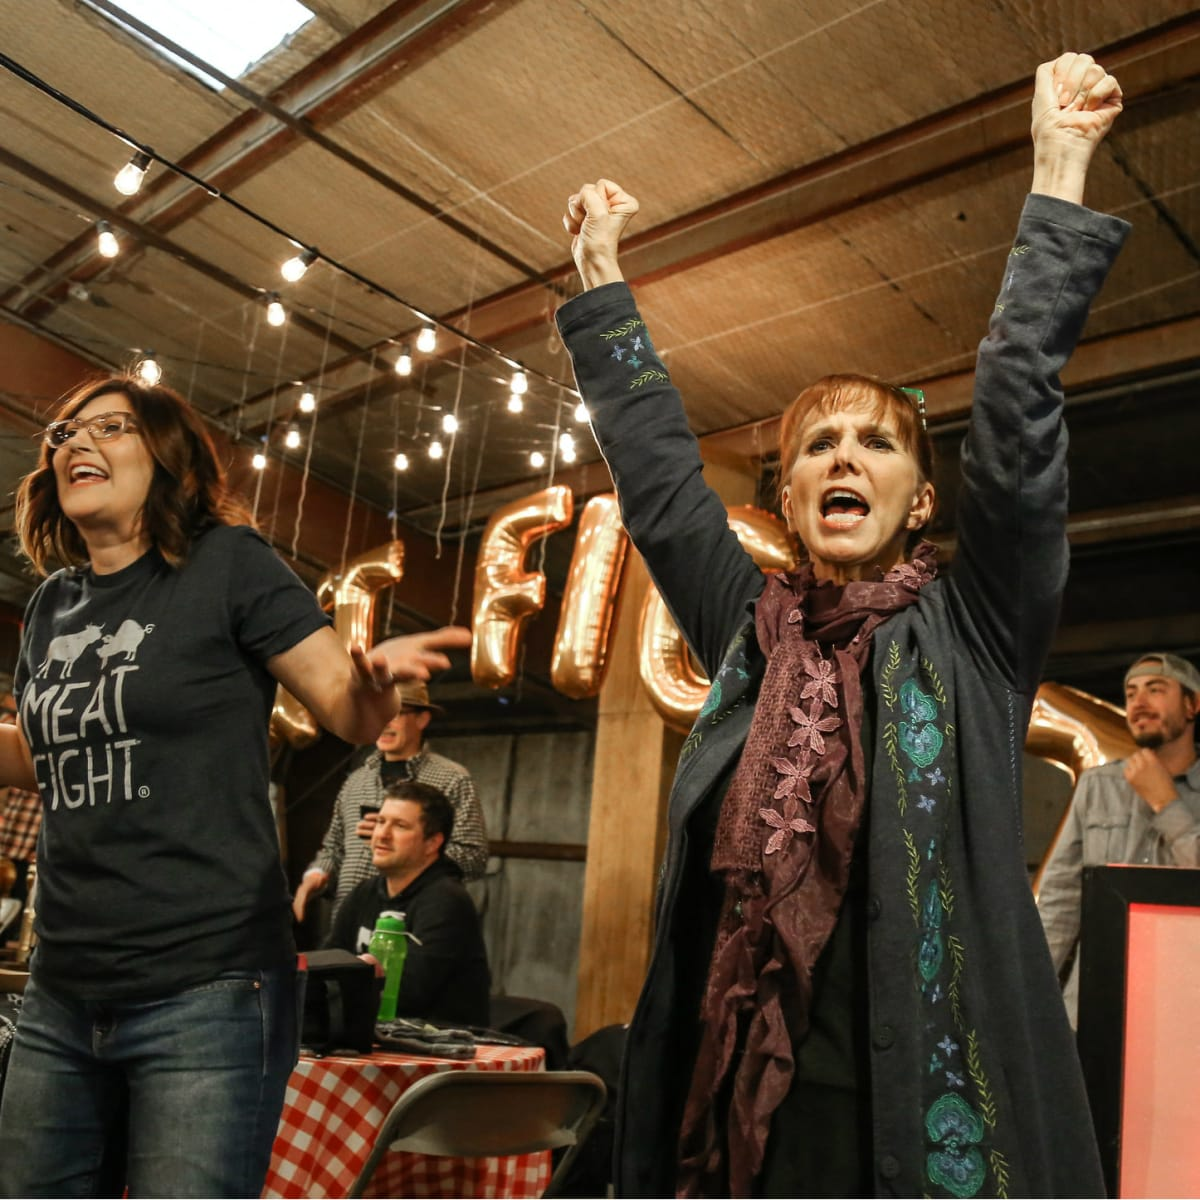 Alice Laussade and Nancy Nichols at Meat Fight 2015